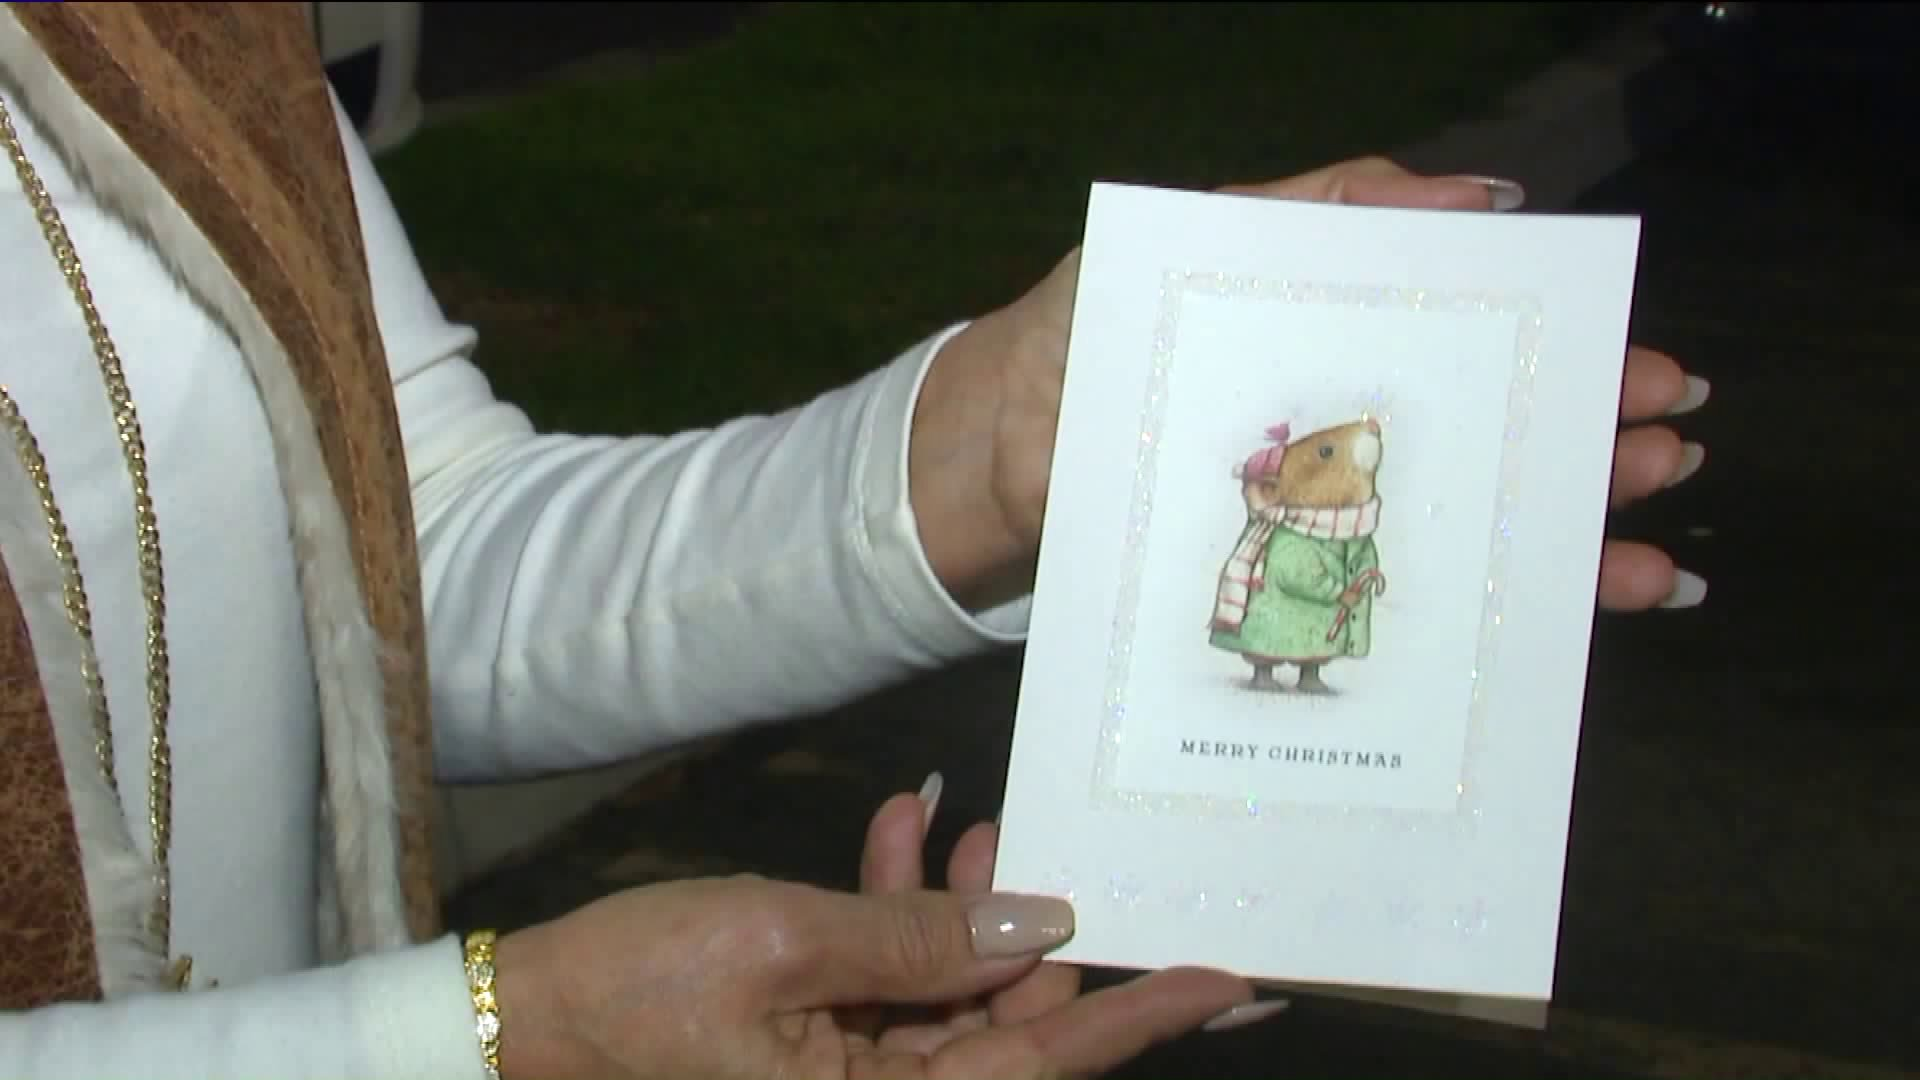 A church group is searching for the rightful recipient of a card someone dropped in a vehicle at Polly's Pies in Cerritos. (Credit: KTLA)